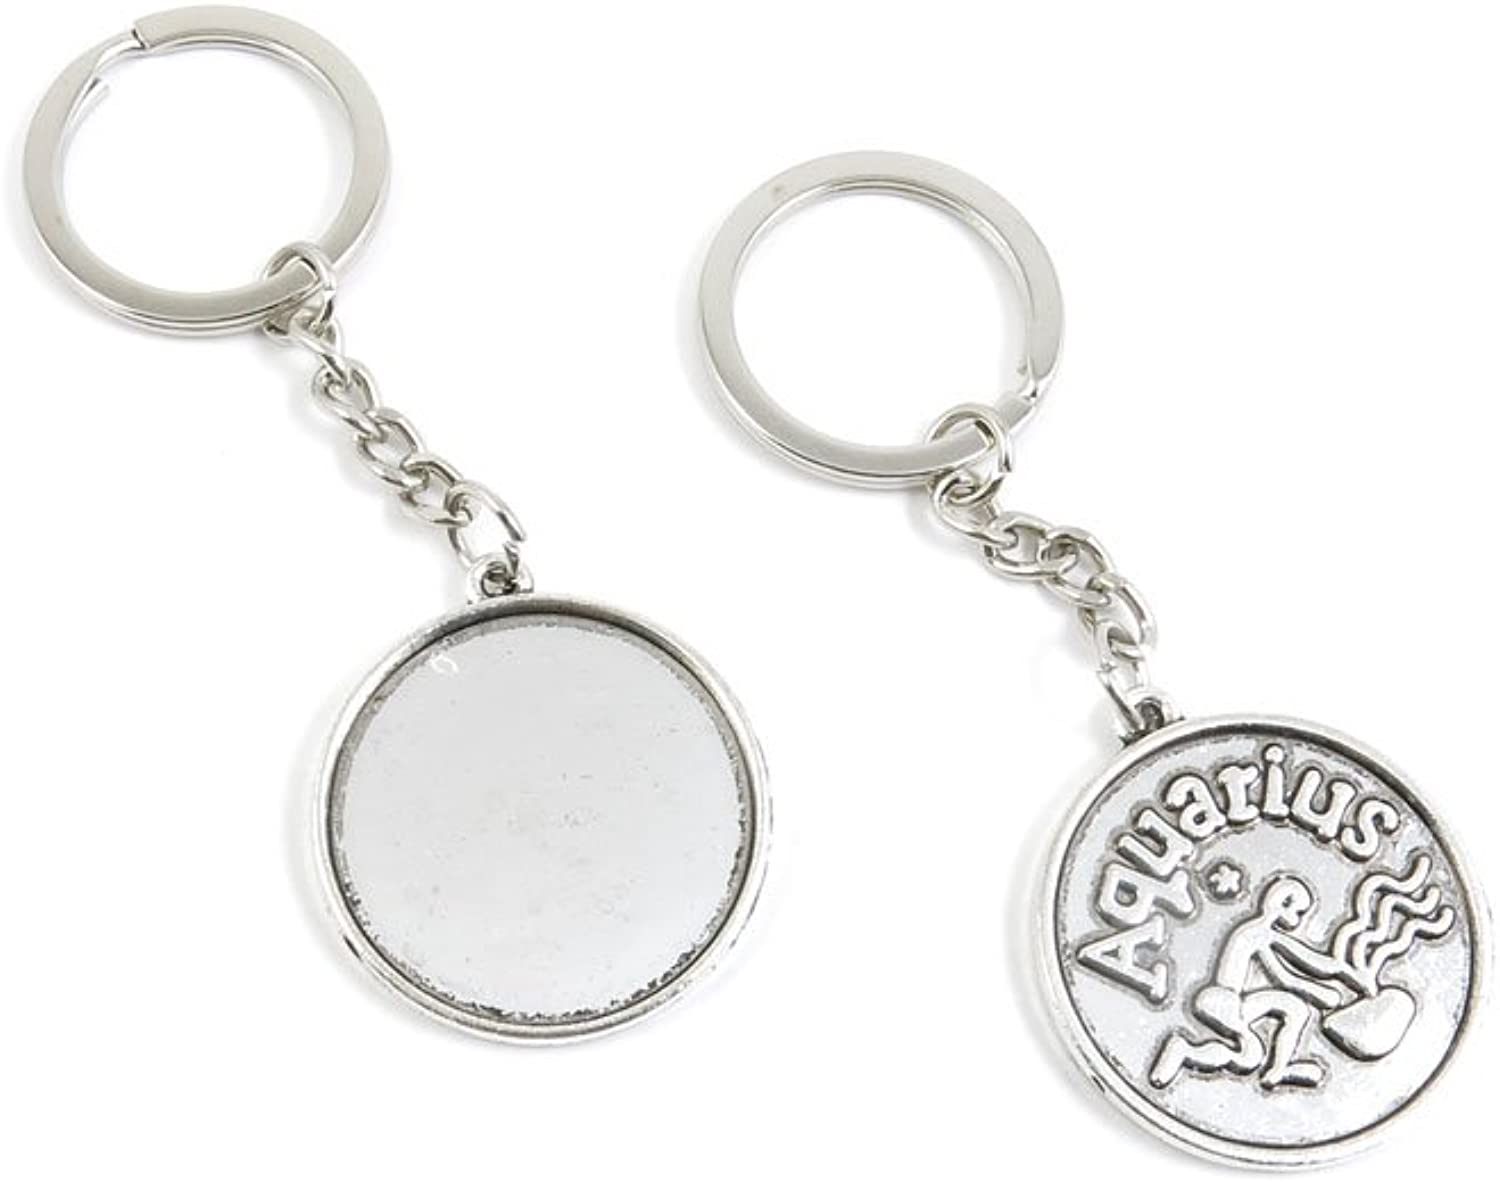 140 Pieces Fashion Jewelry Keyring Keychain Door Car Key Tag Ring Chain Supplier Supply Wholesale Bulk Lots R9WO2 Libra Round Cabochon Base